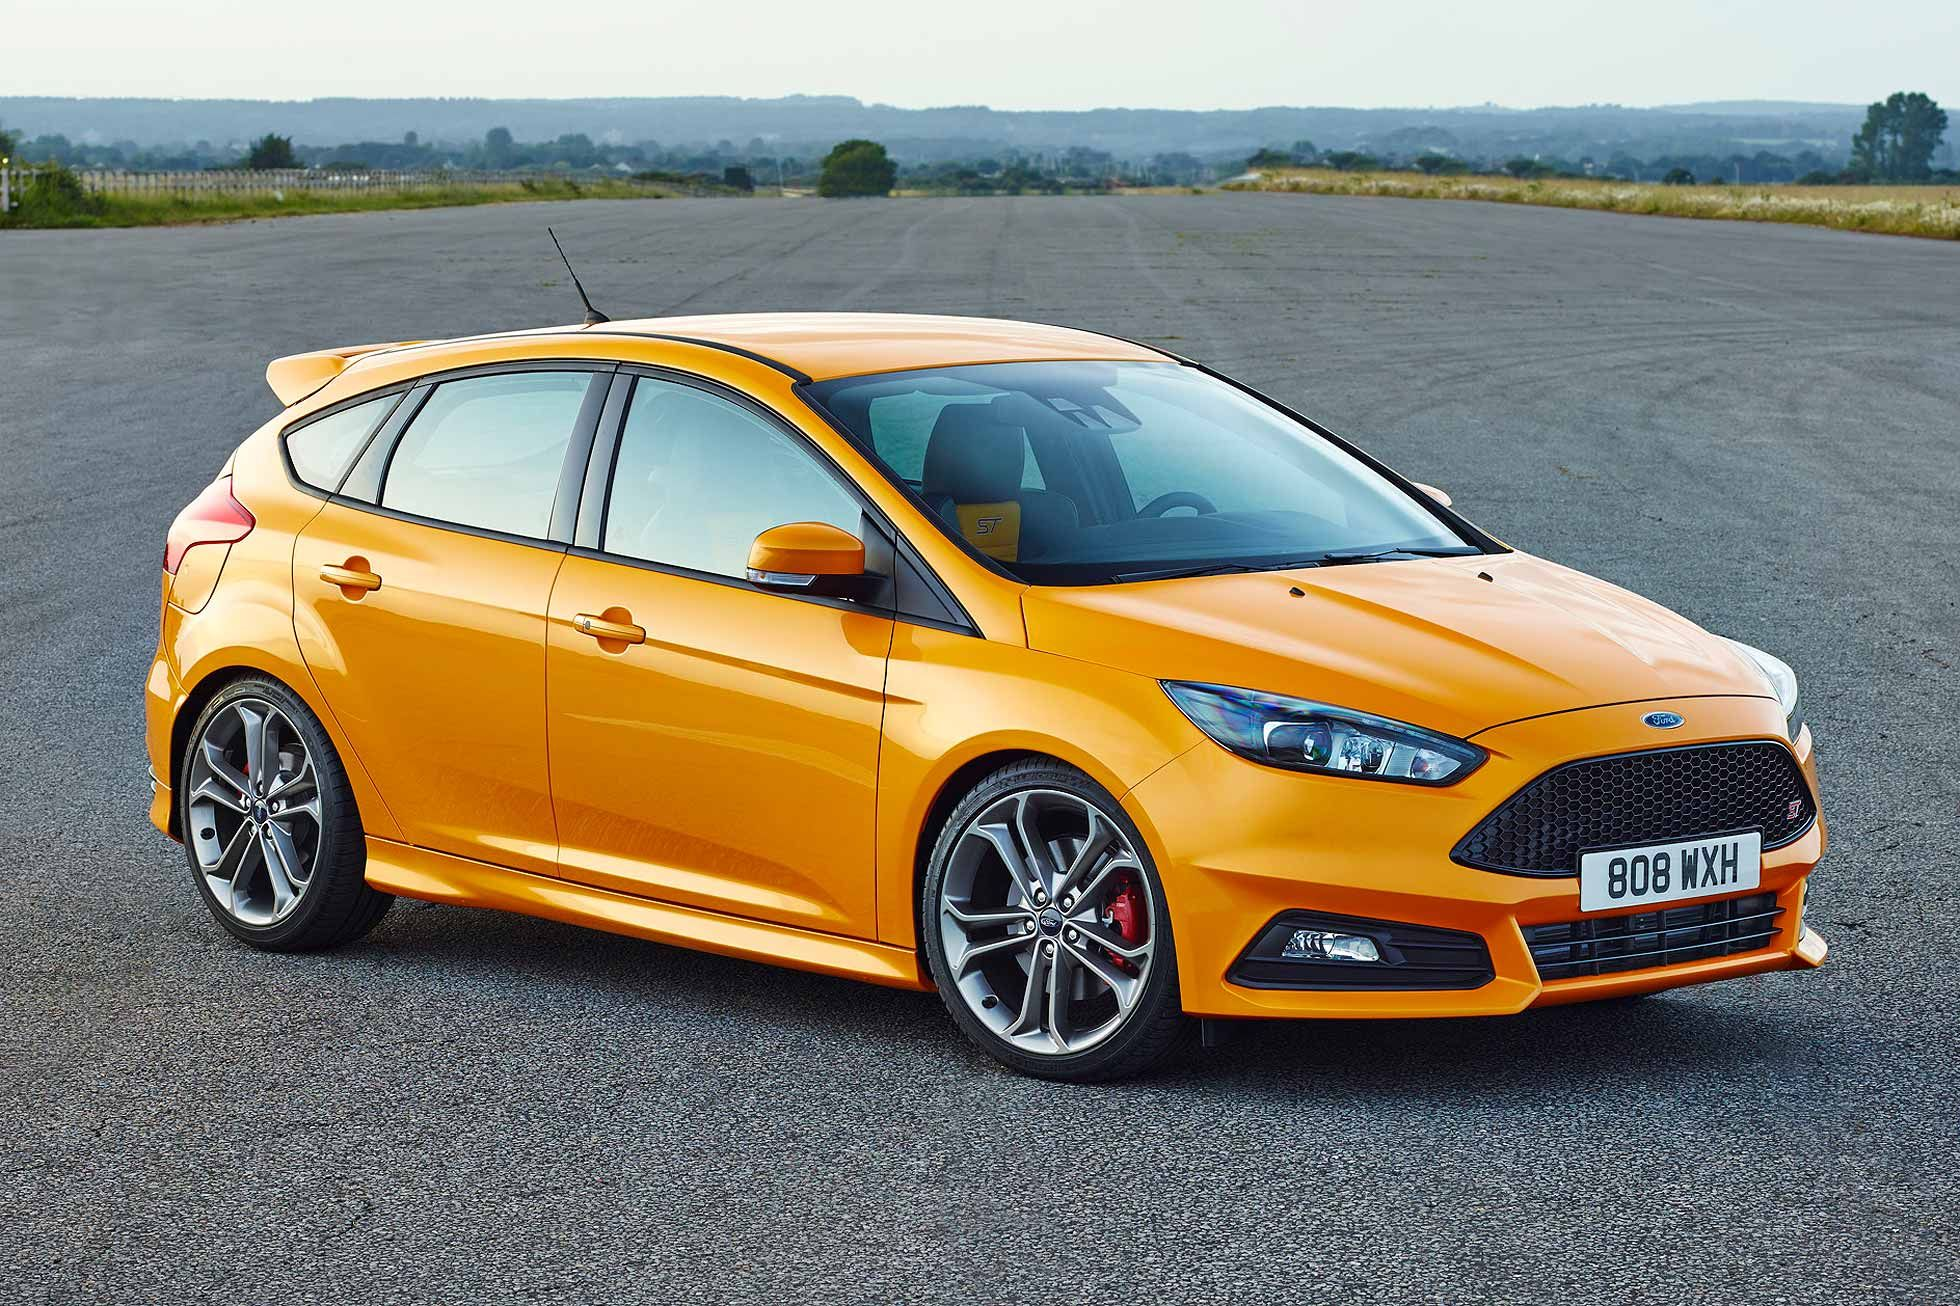 2015 Ford Focus St To Deliver 275 Hp With Mountune Upgrade Car